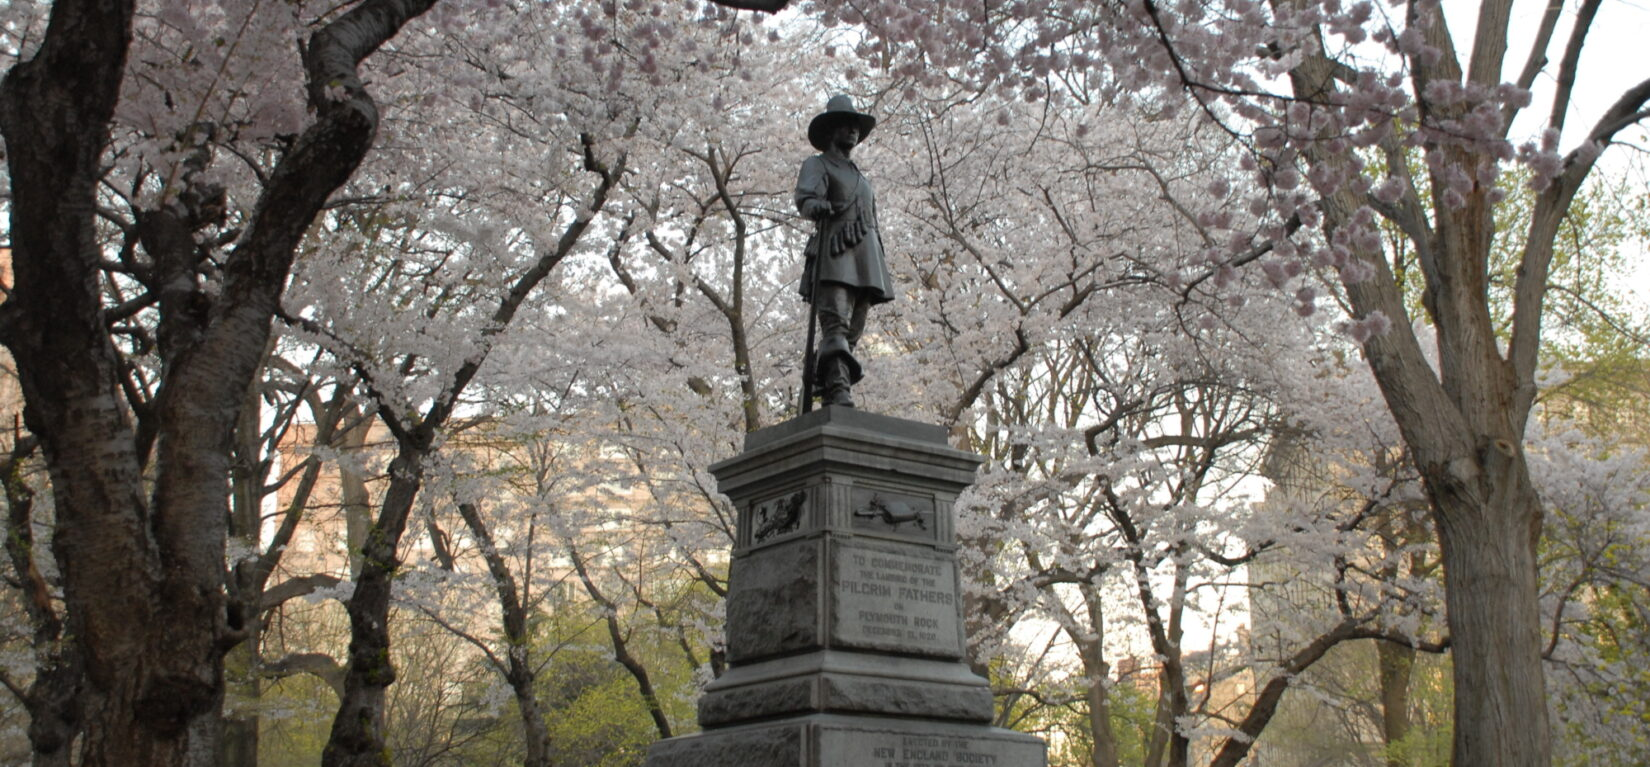 The statue at Pilgrim Hill surrounded by spring blossoms